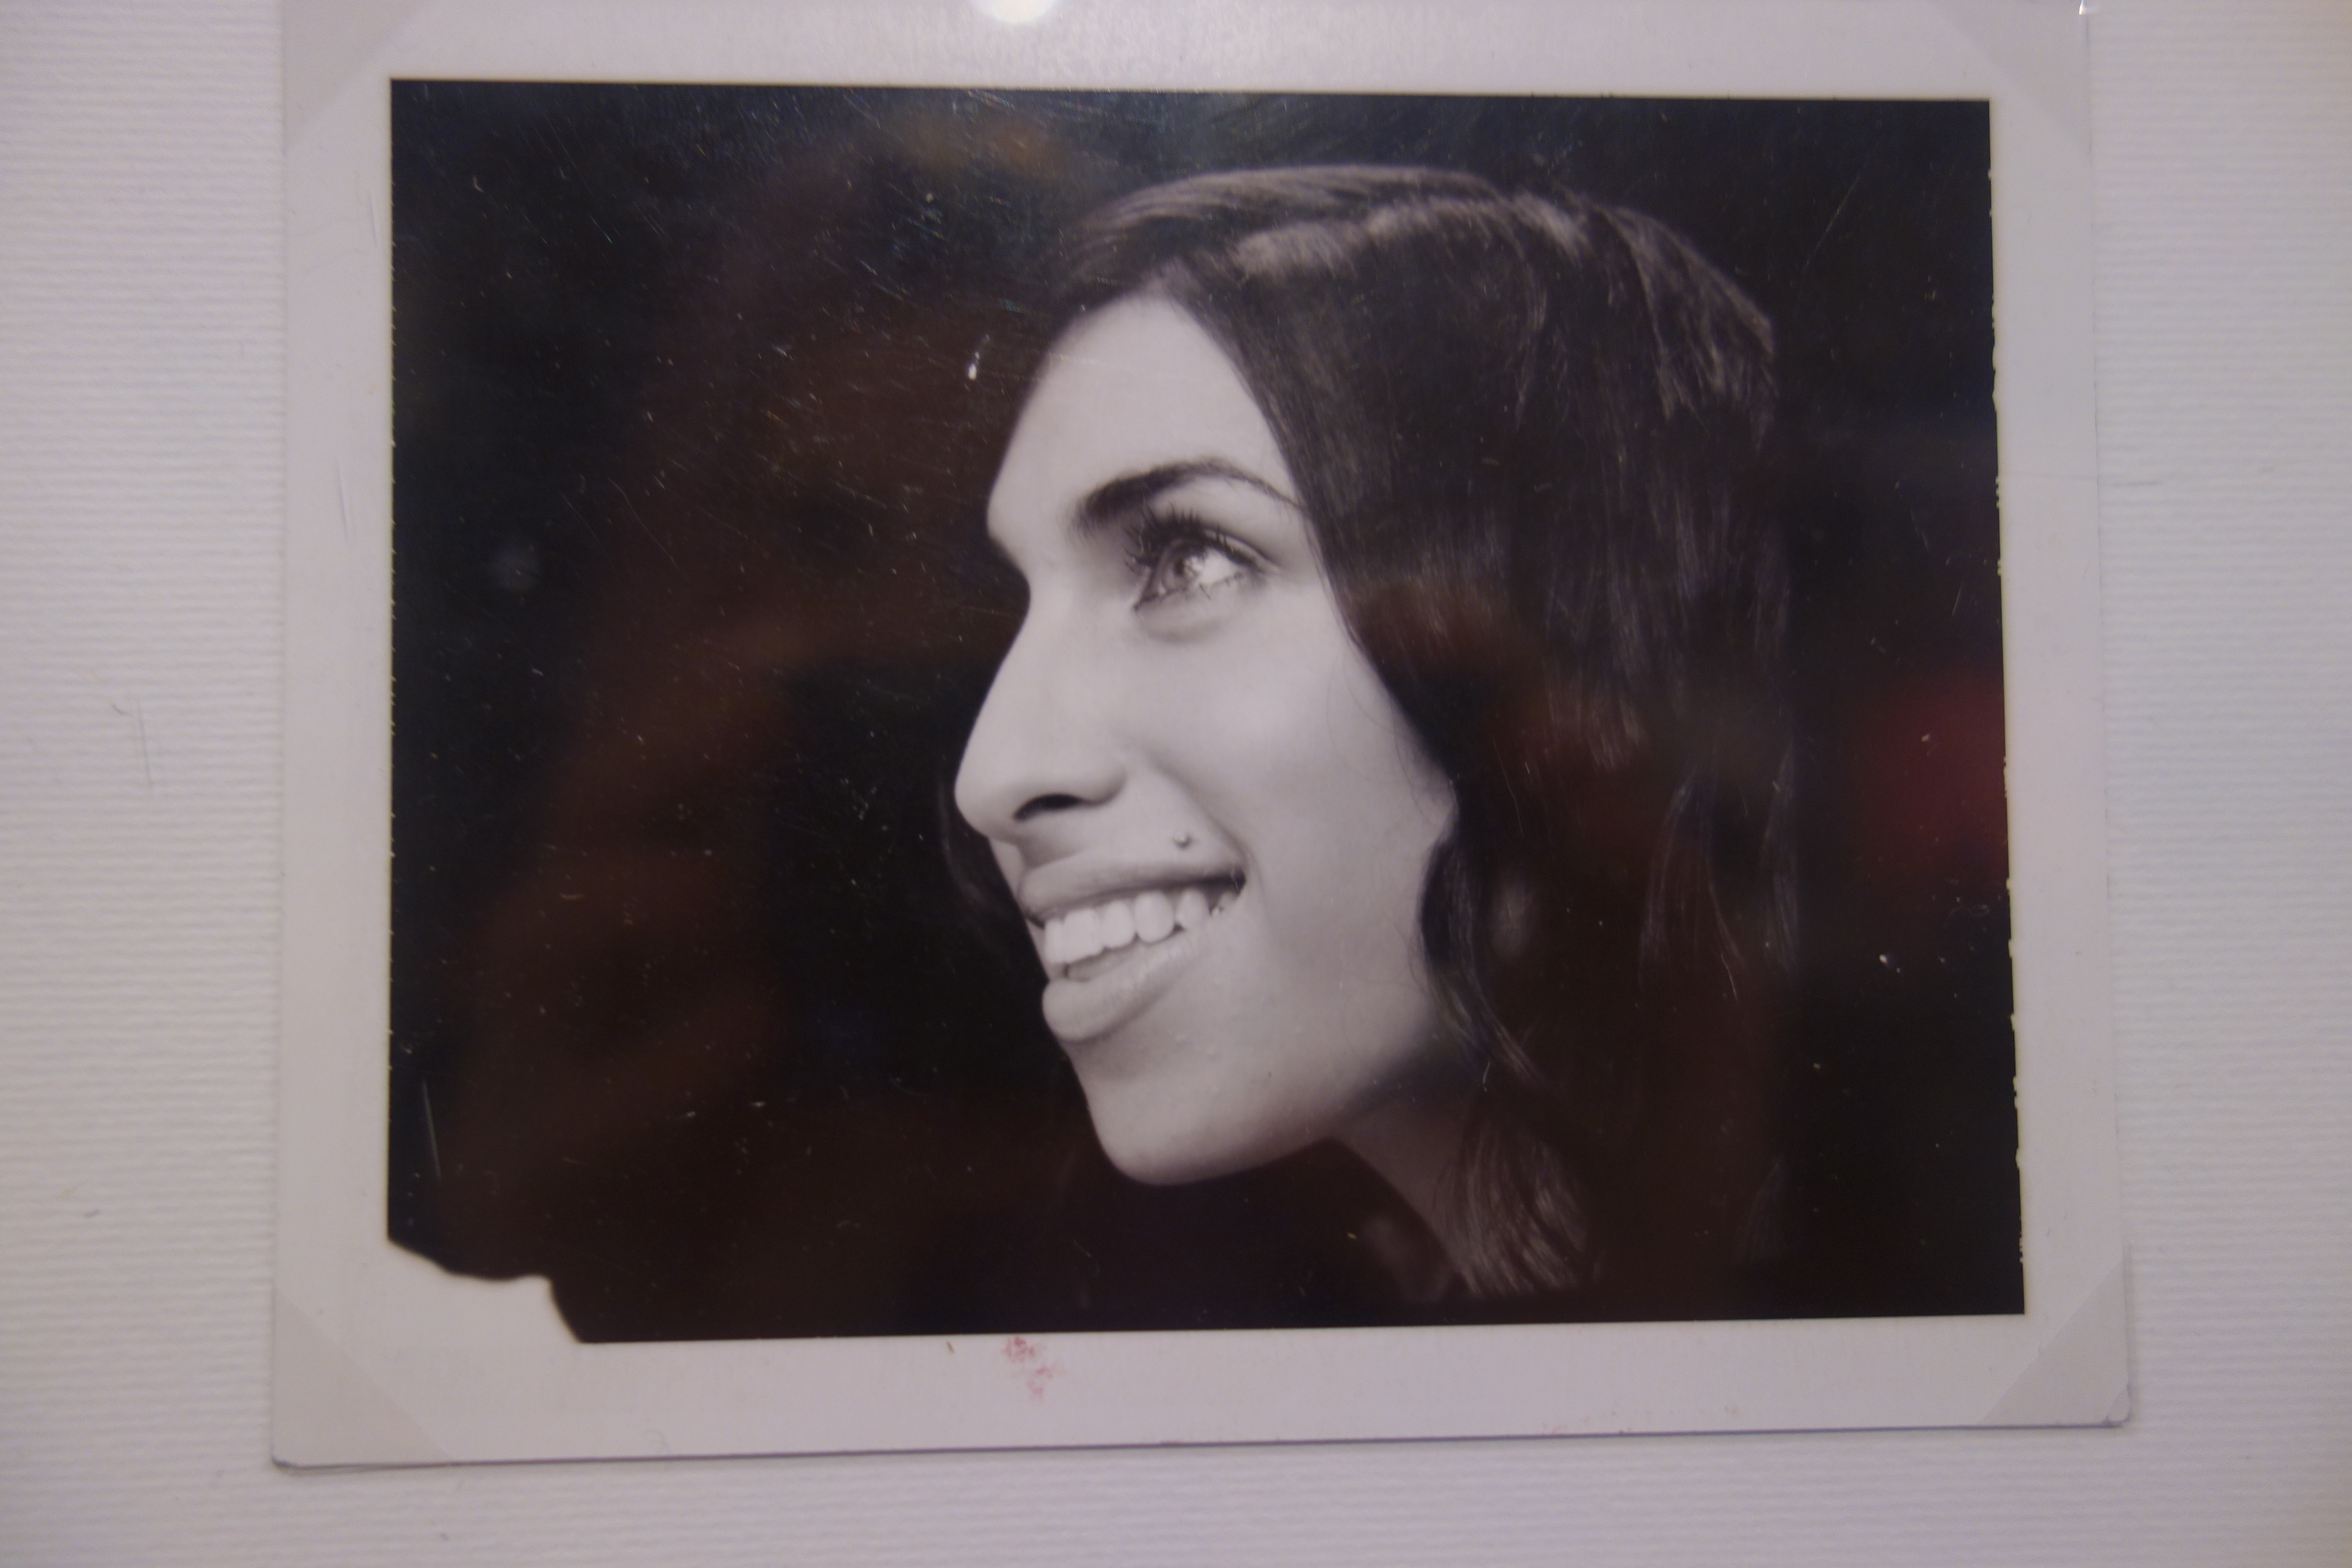 A photo of Amy Winehouse from the exhibition